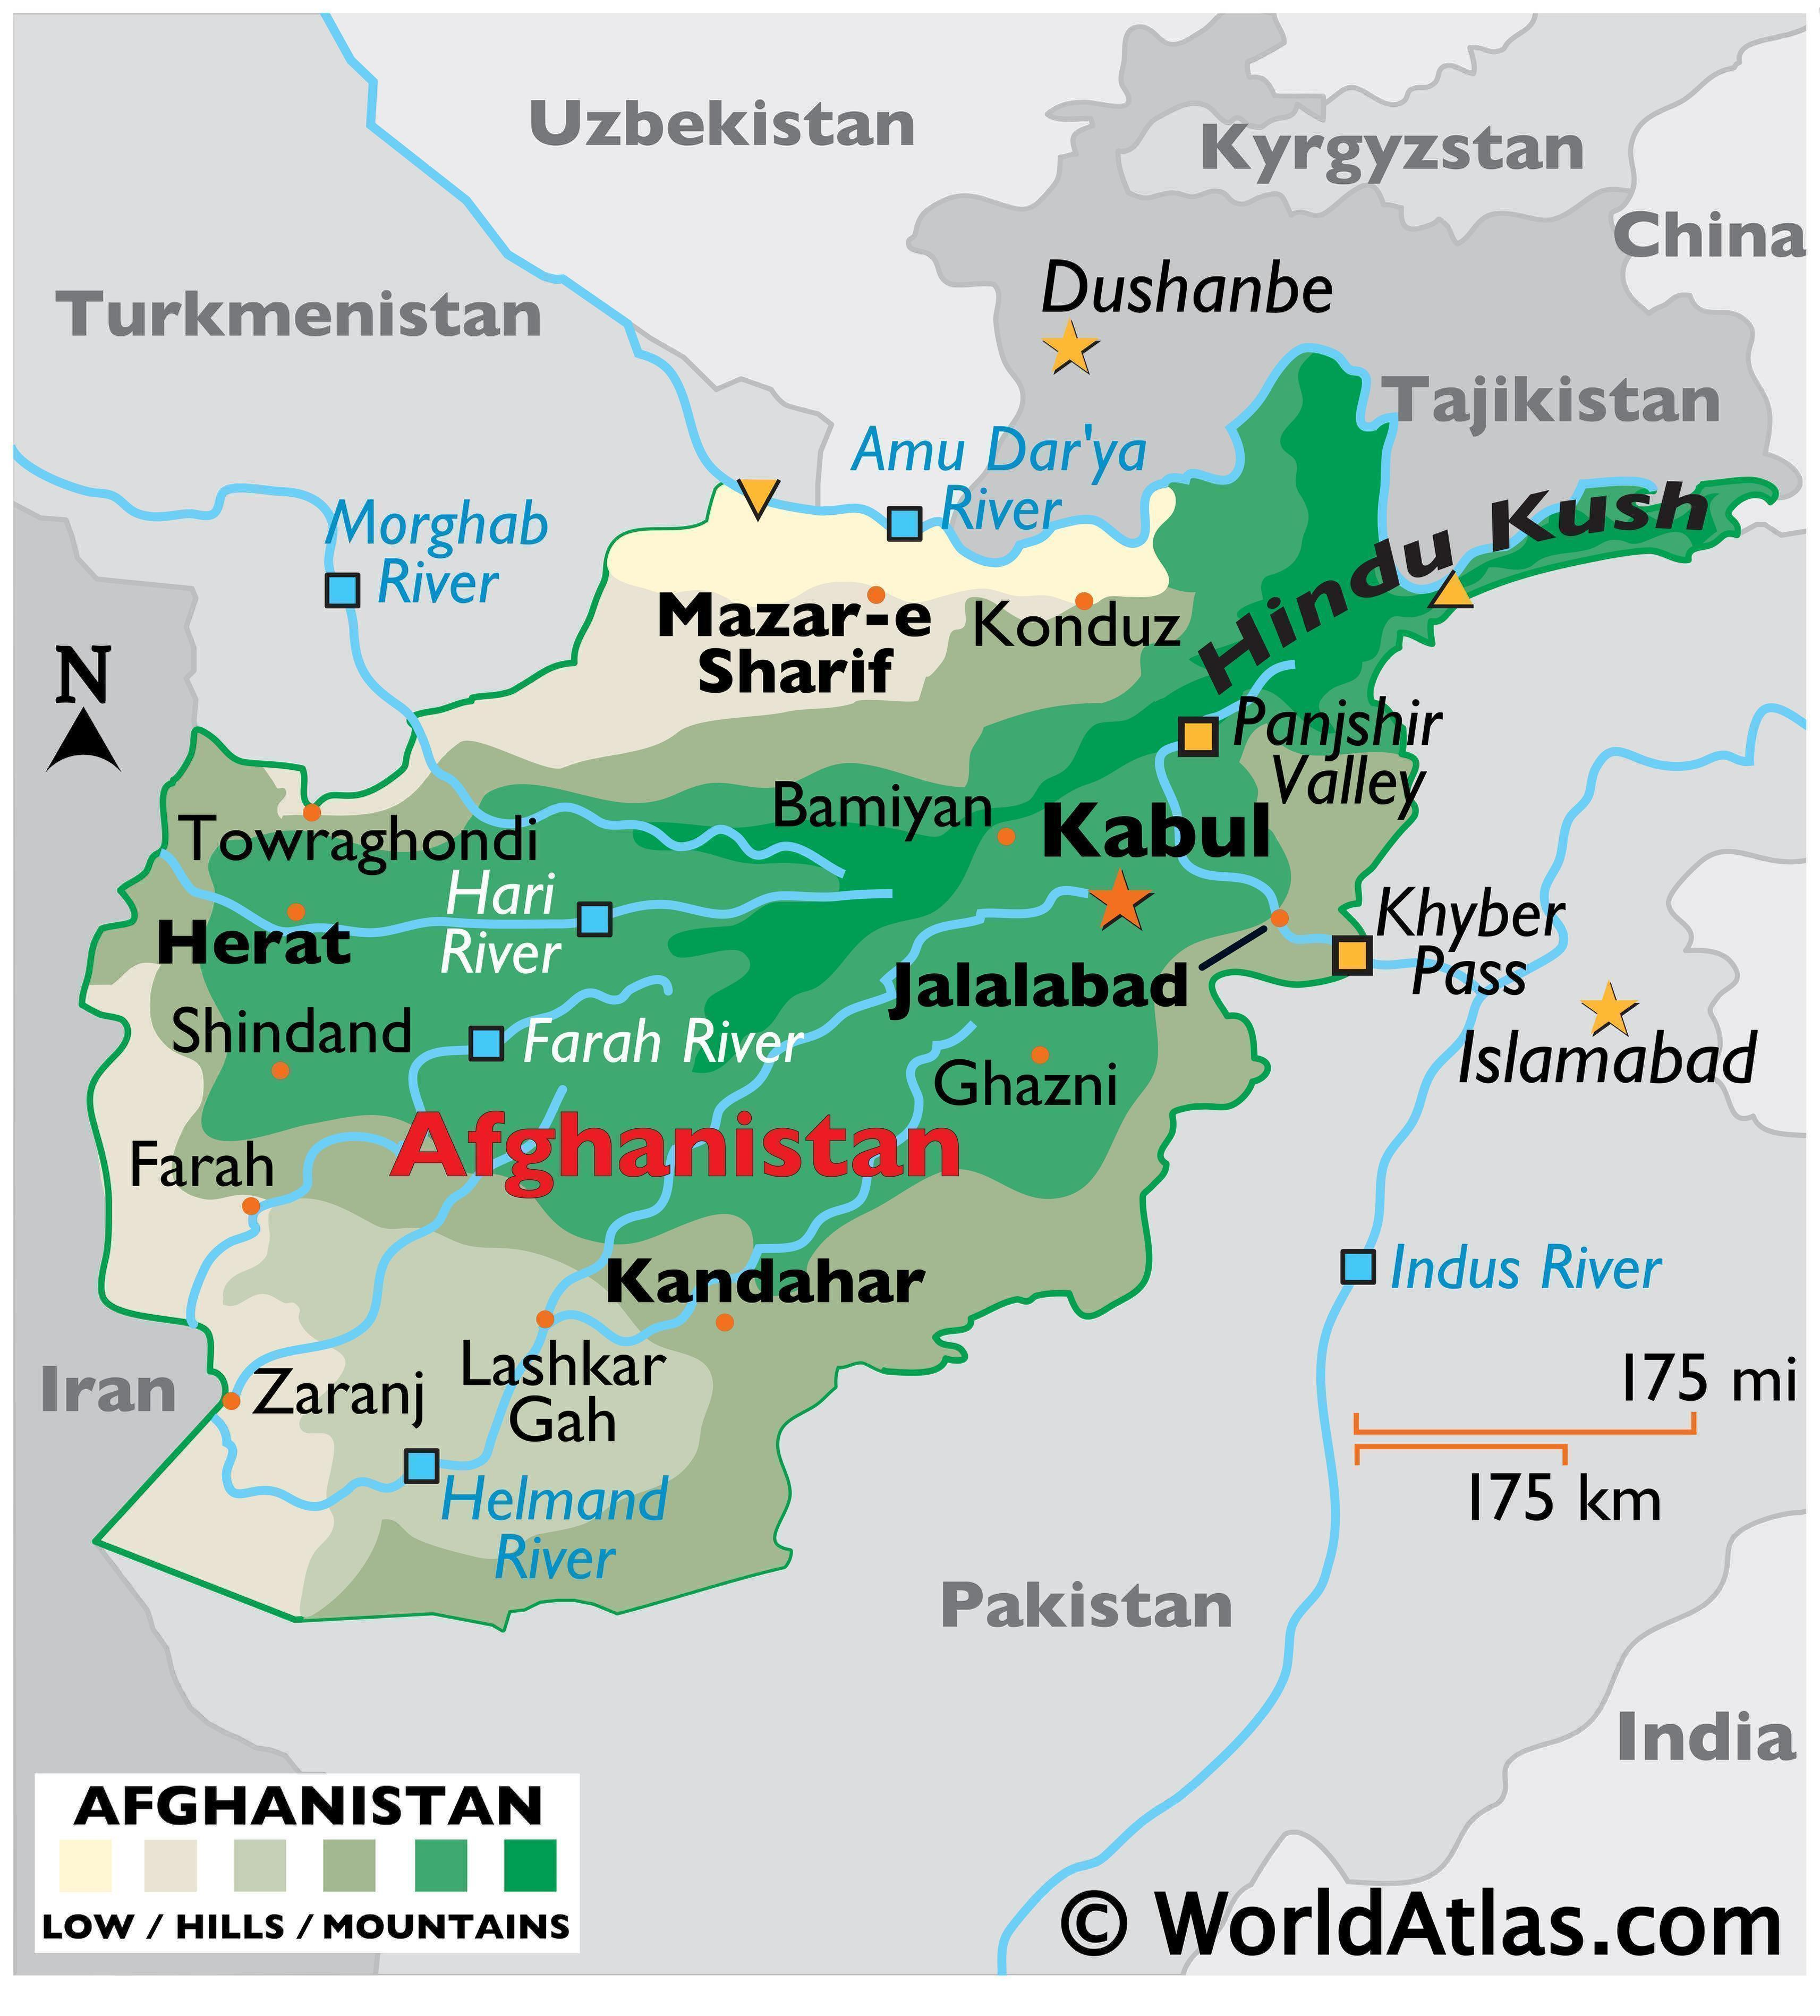 Physical Map of Afghanistan showing state boundaries, relief, major rivers, mountains, important cities, and more.